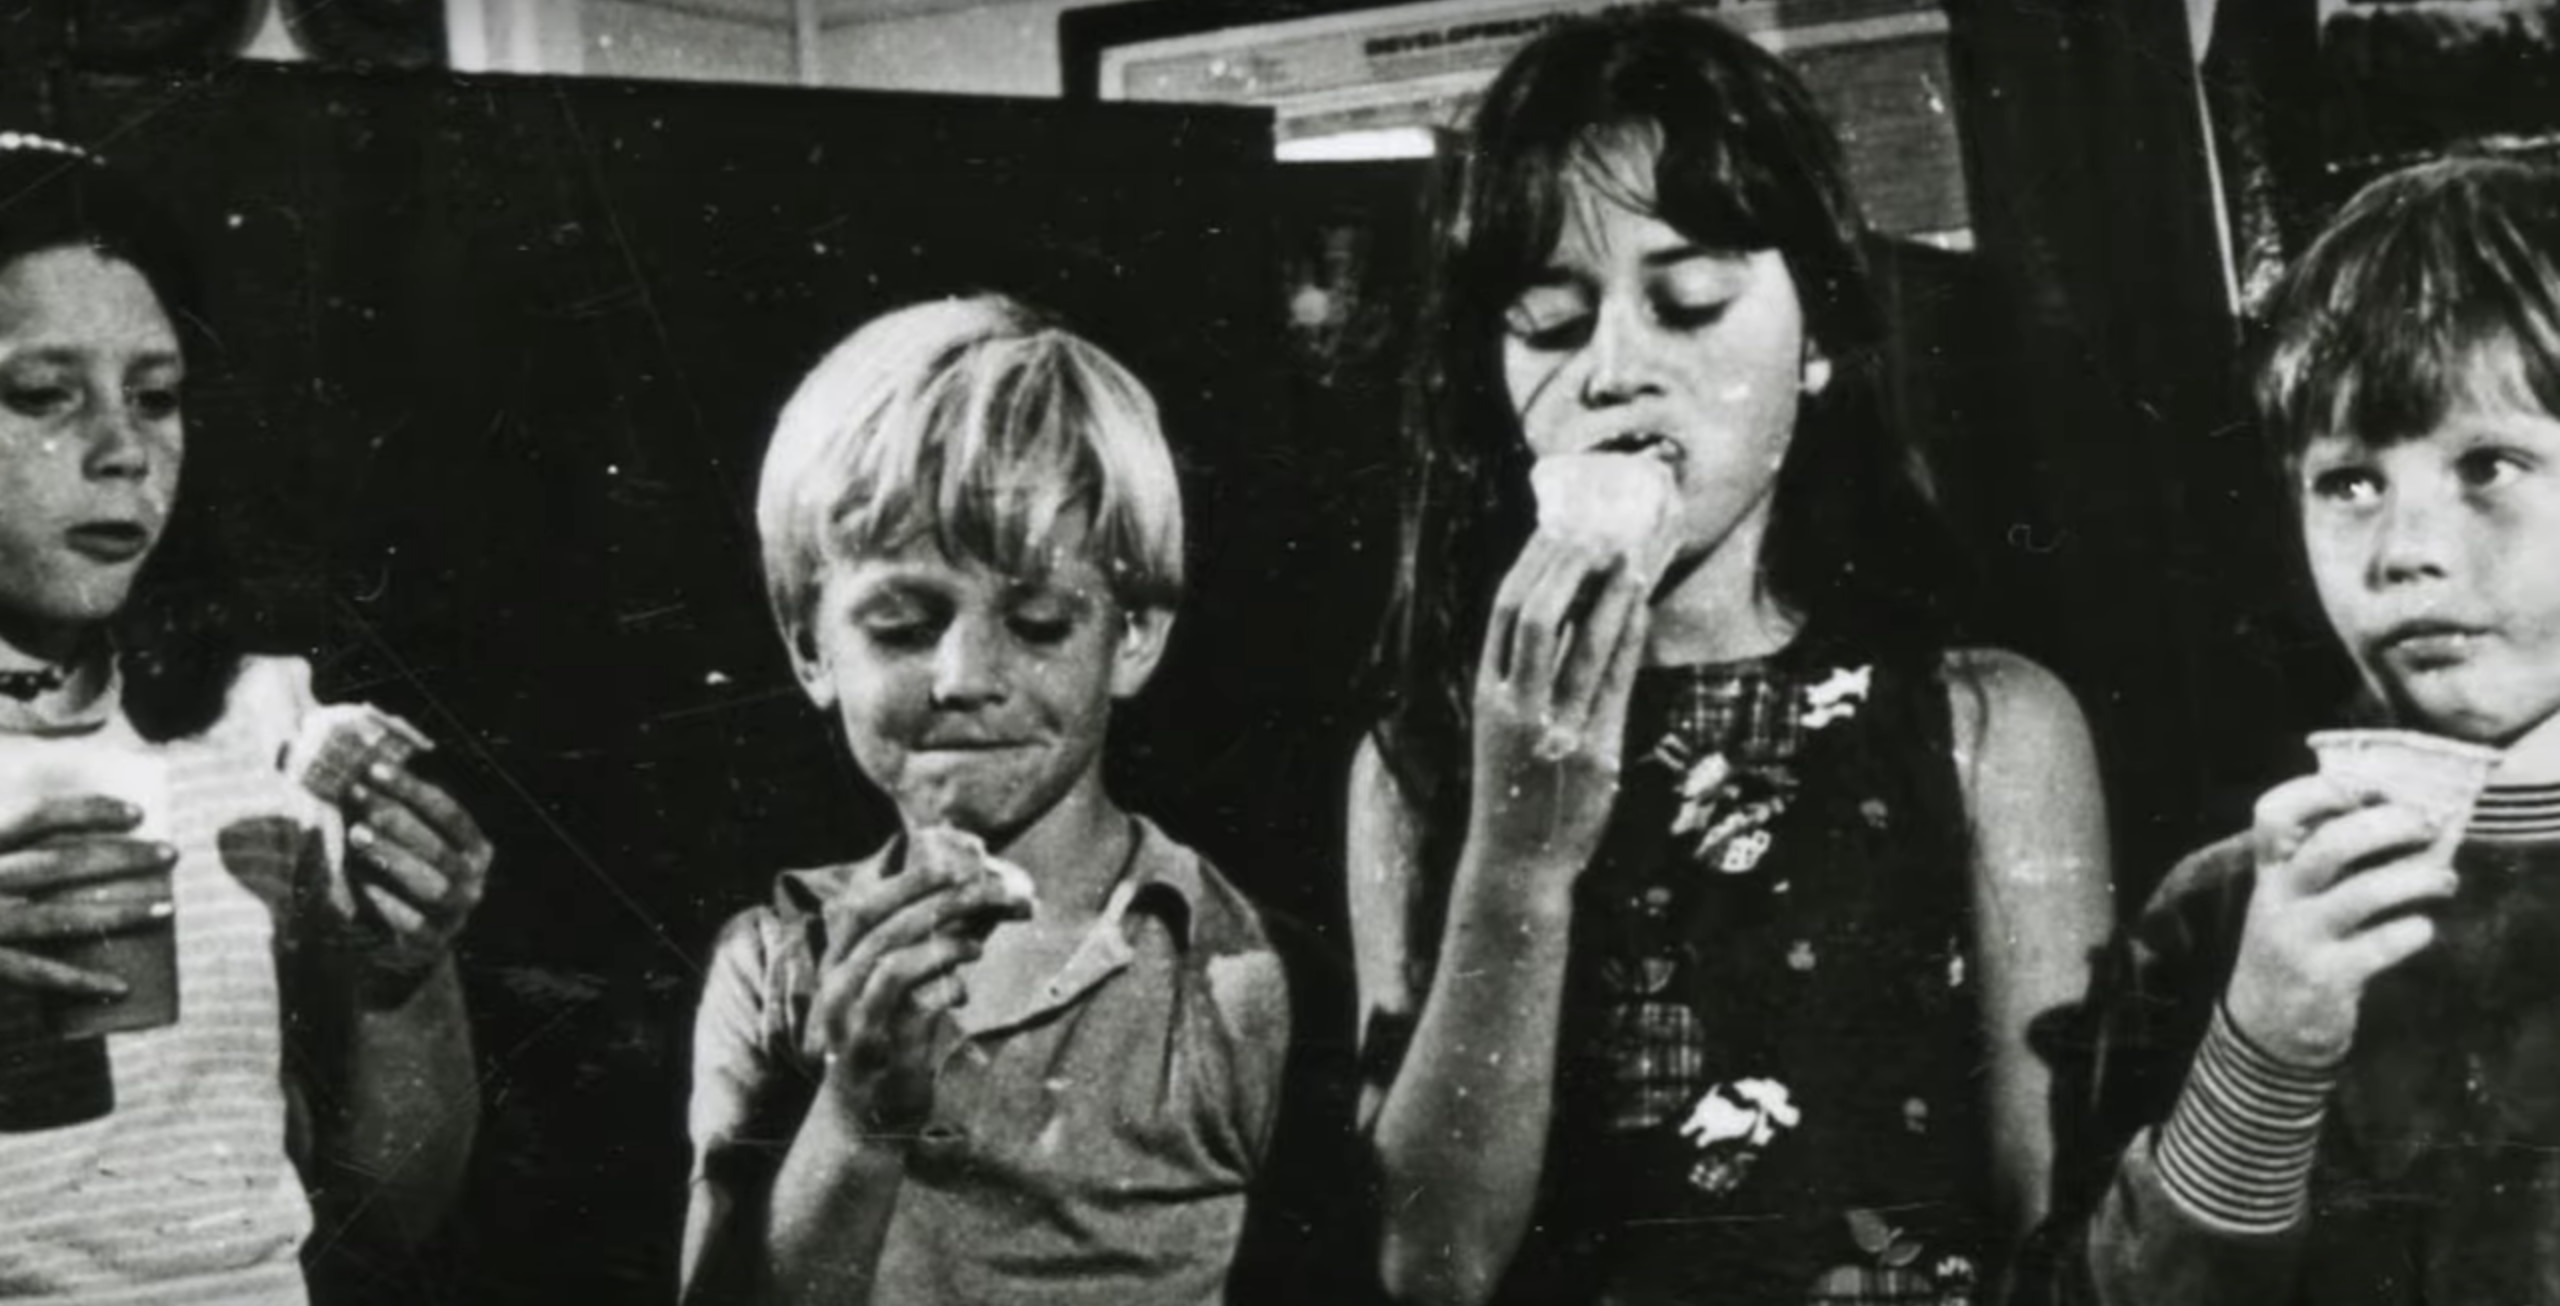 Some of the children enjoying some snacks after being rescued.